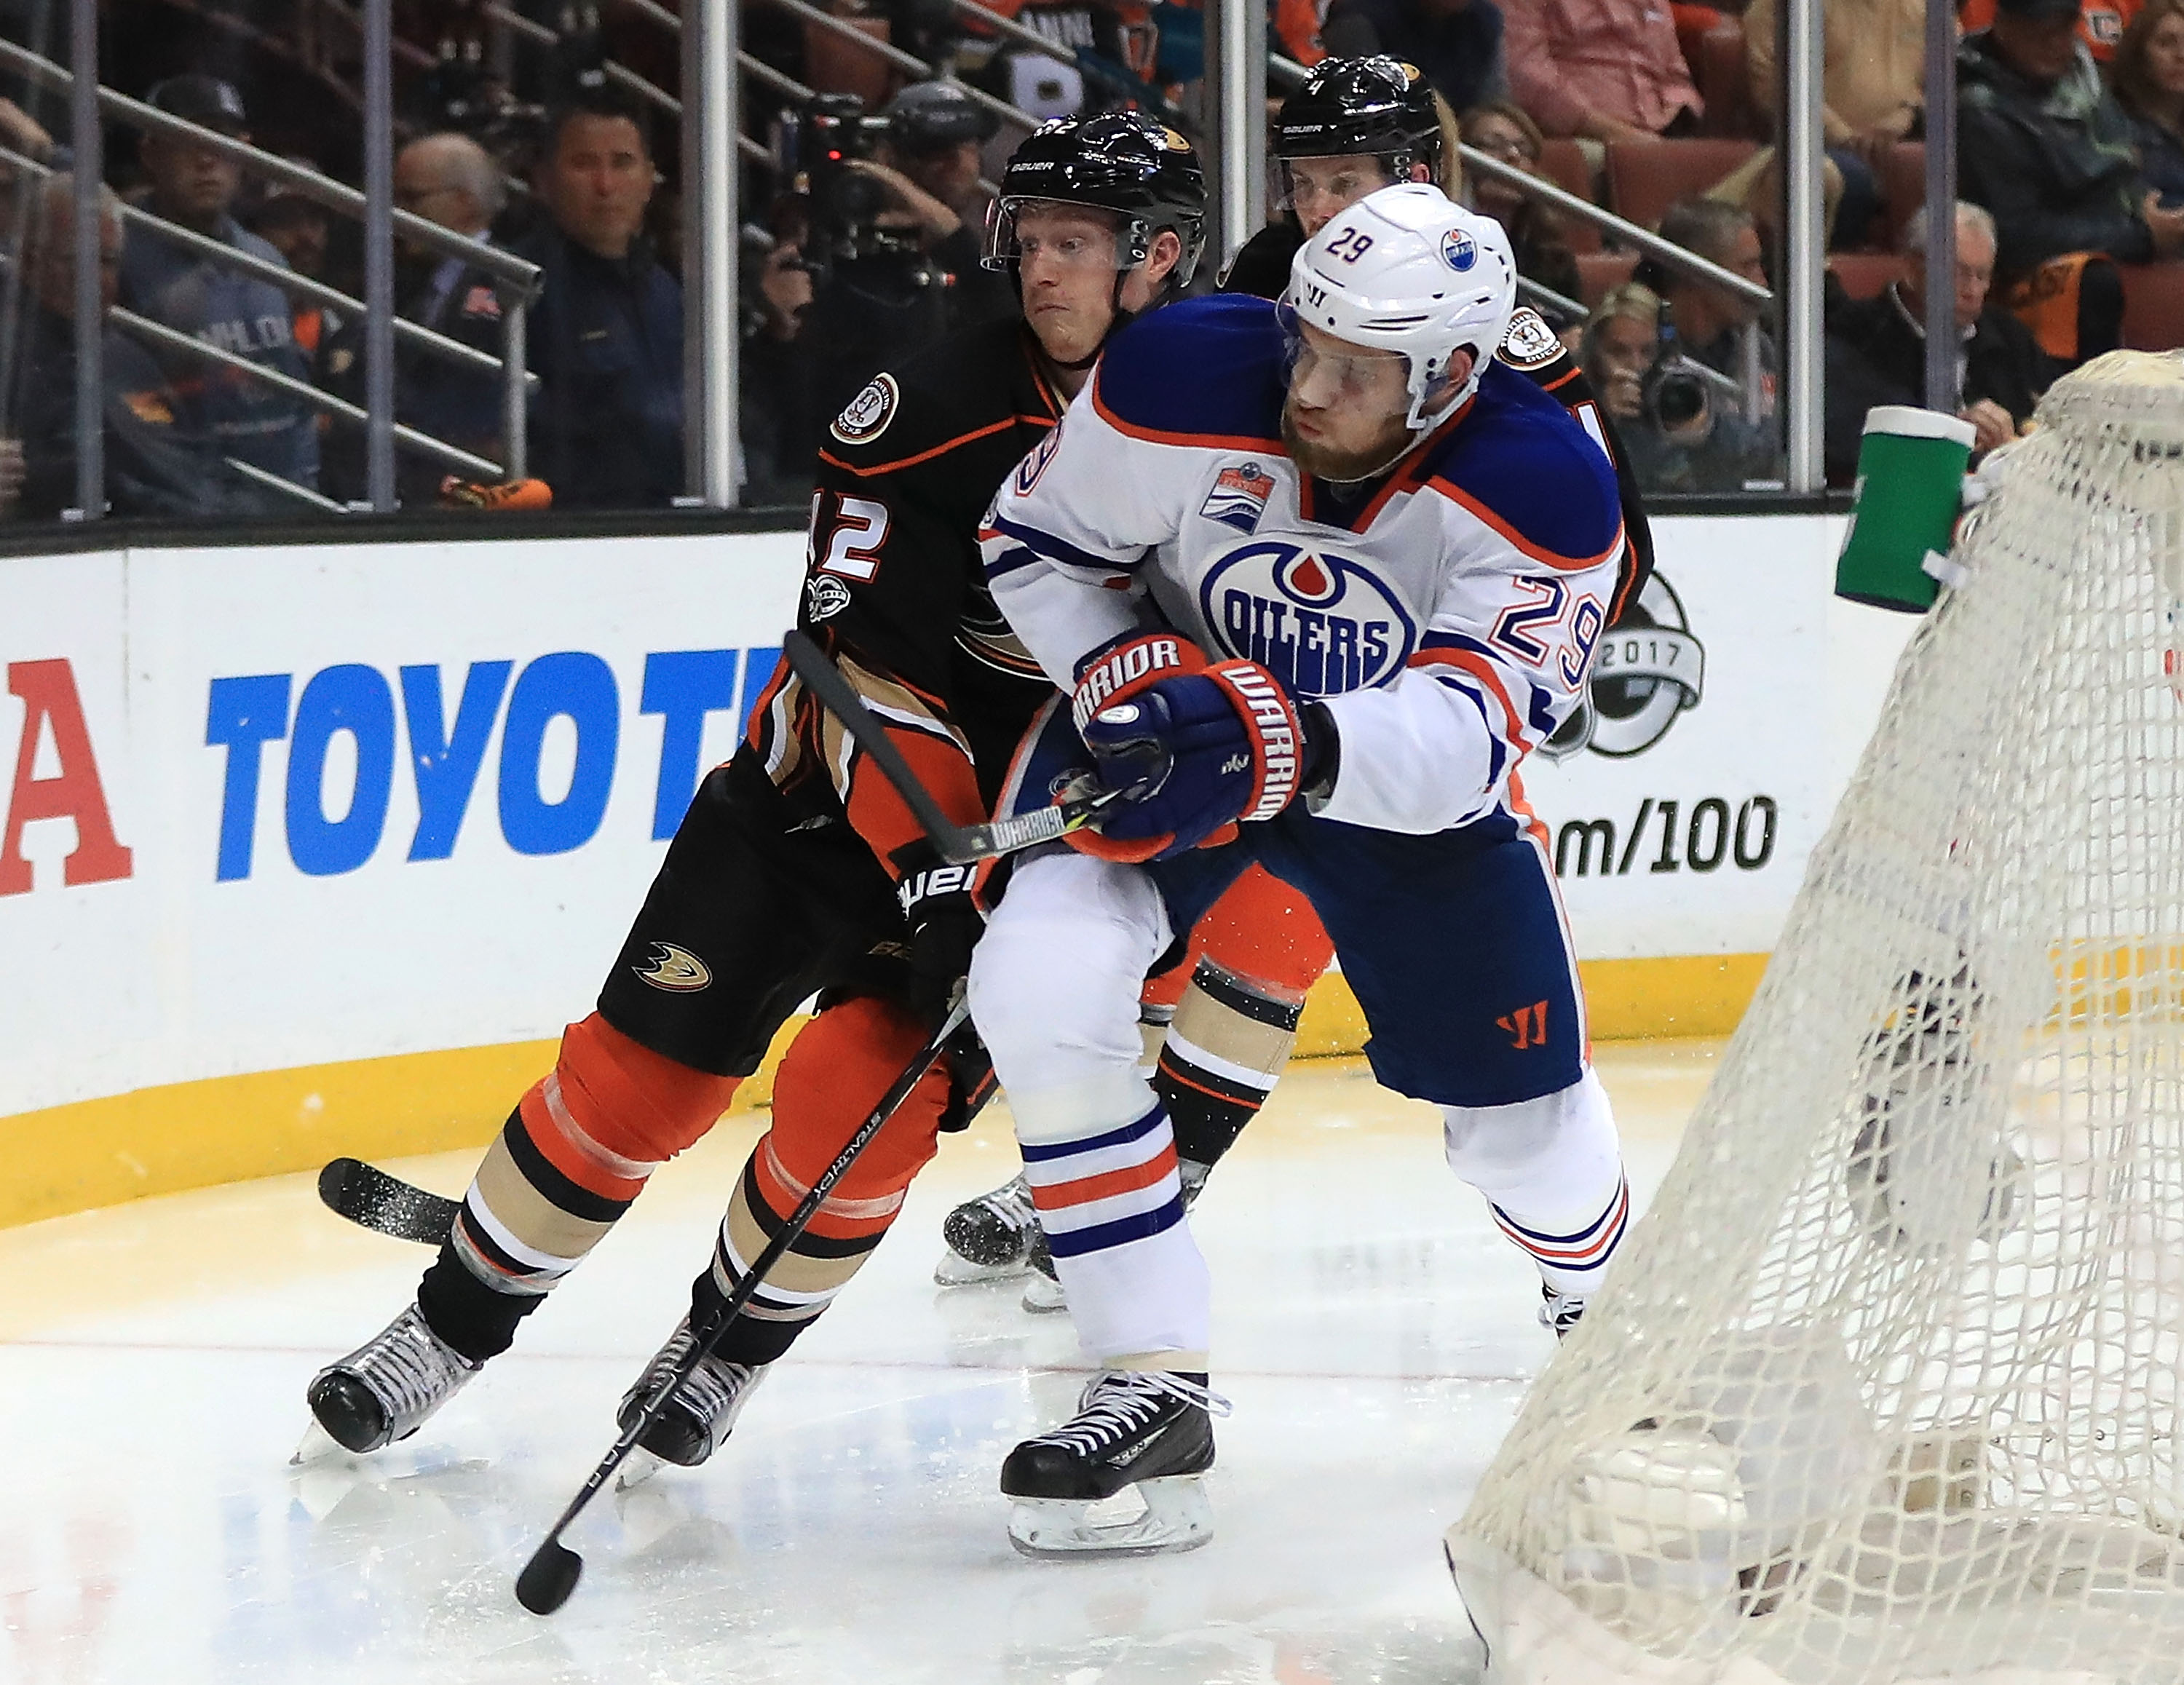 Der Kommissar's In Town: Thoughts on Leon Draisaitl's Deal